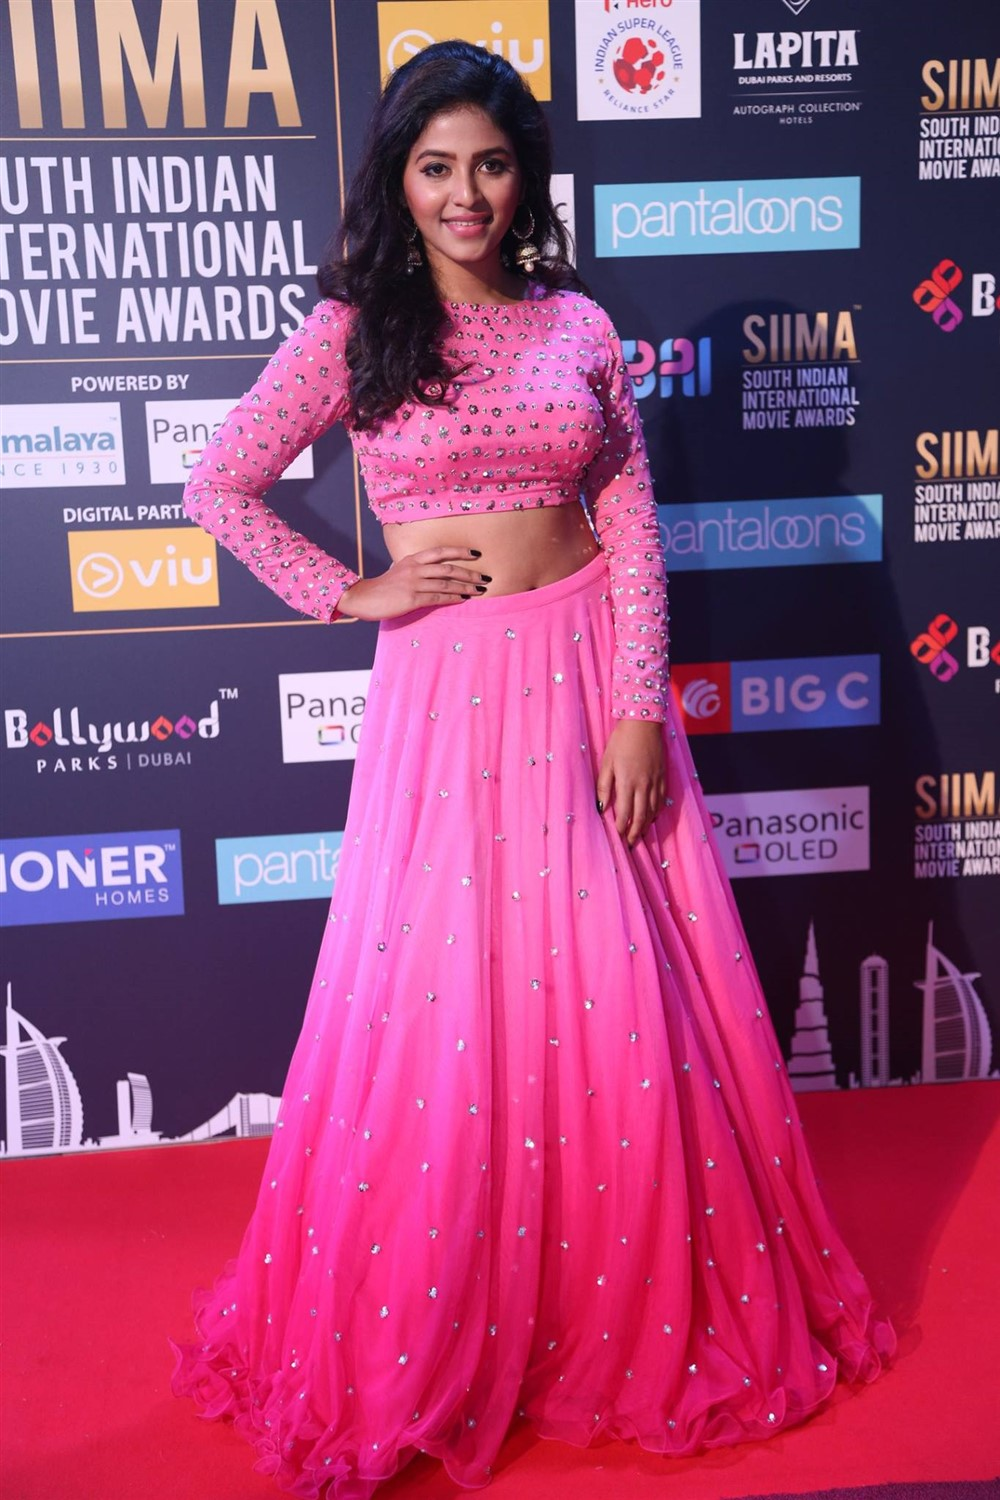 actress-anjali-pictures-siima-awards-2018-red-carpet-day-2-2af299b